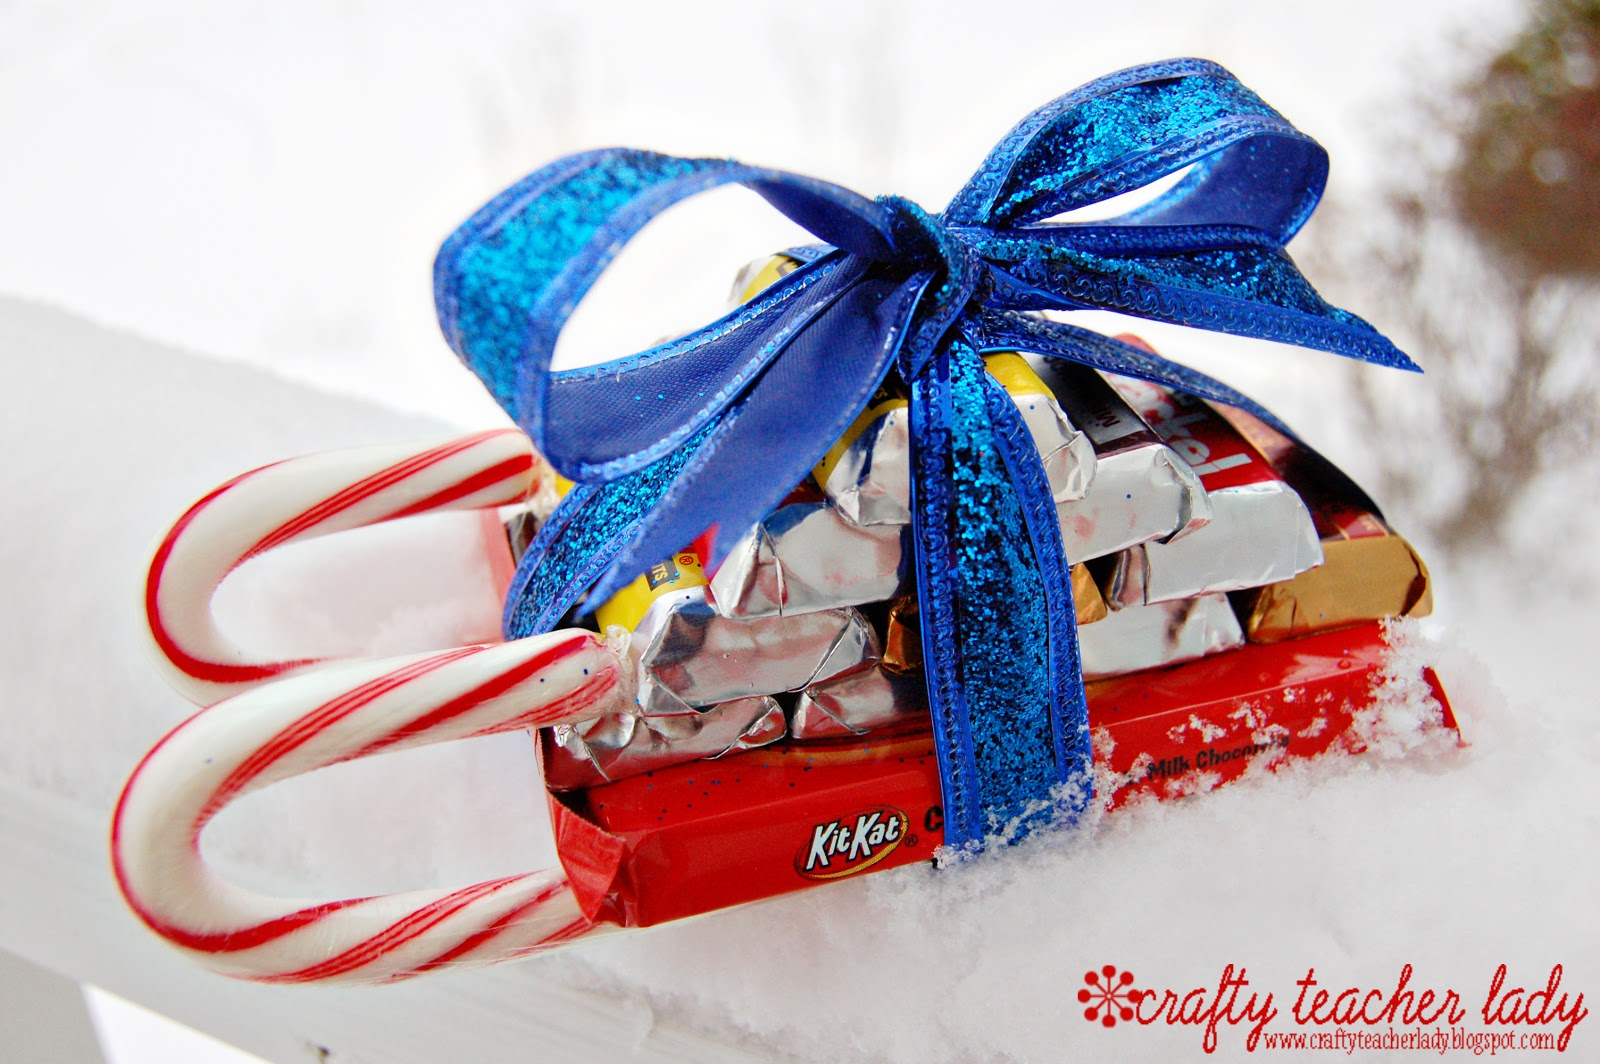 Crafty Teacher Lady: Candy Cane Sleigh Tutorial